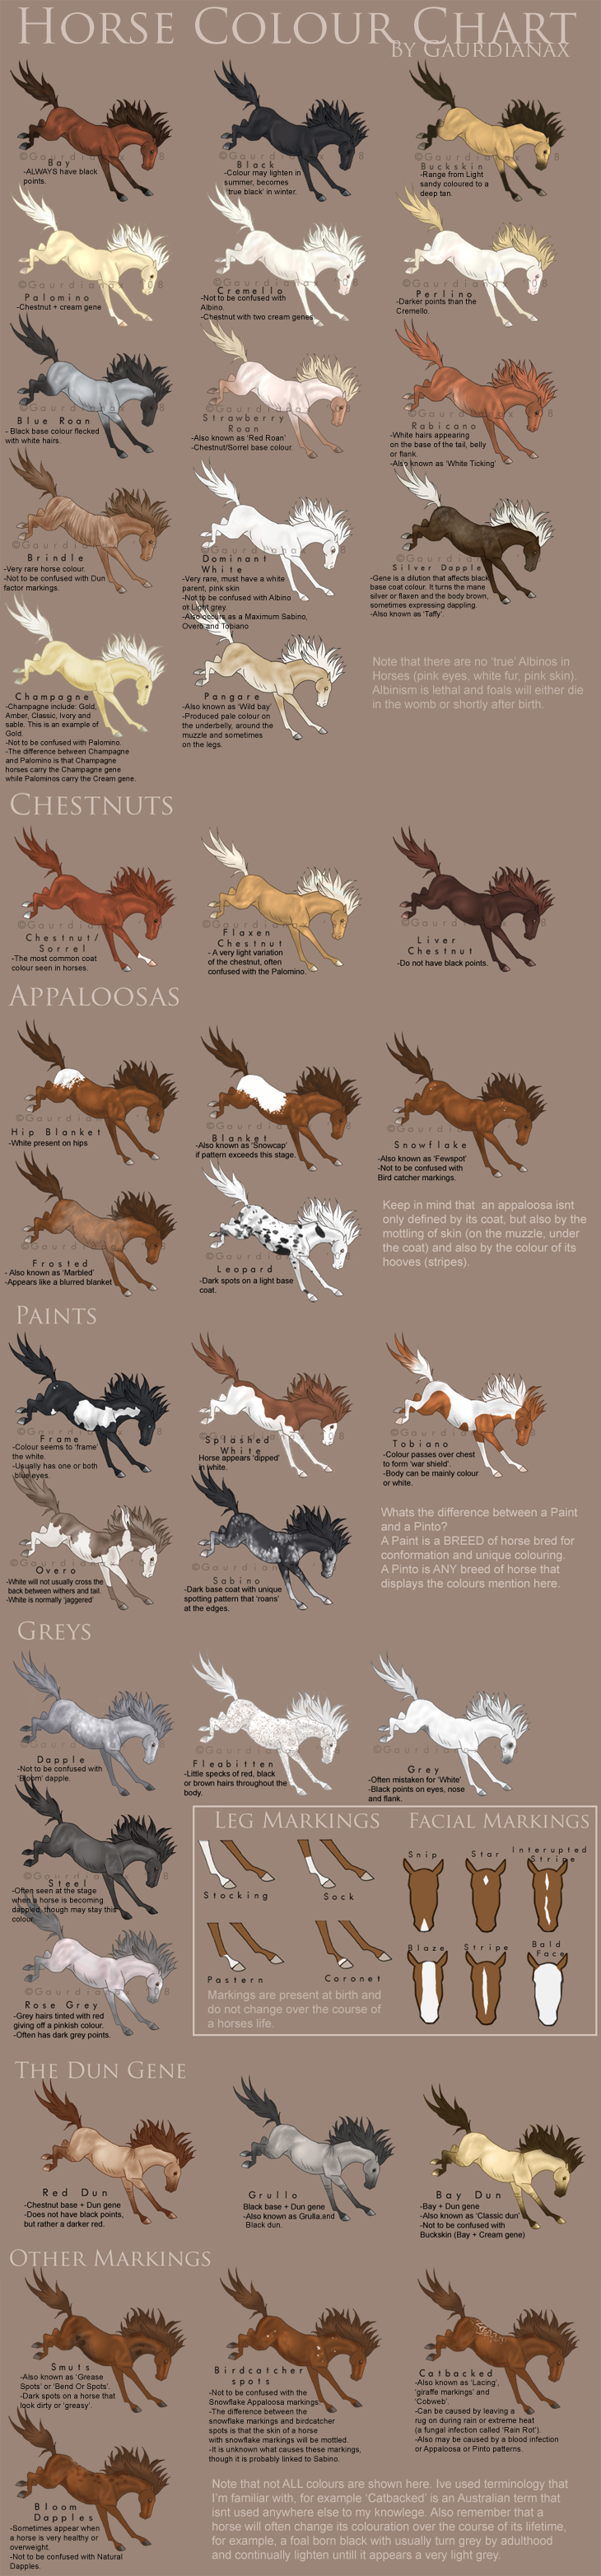 Horse colour chart vs 2 by gaurdianax on deviantart horse colour chart vs 2 by gaurdianax nvjuhfo Choice Image